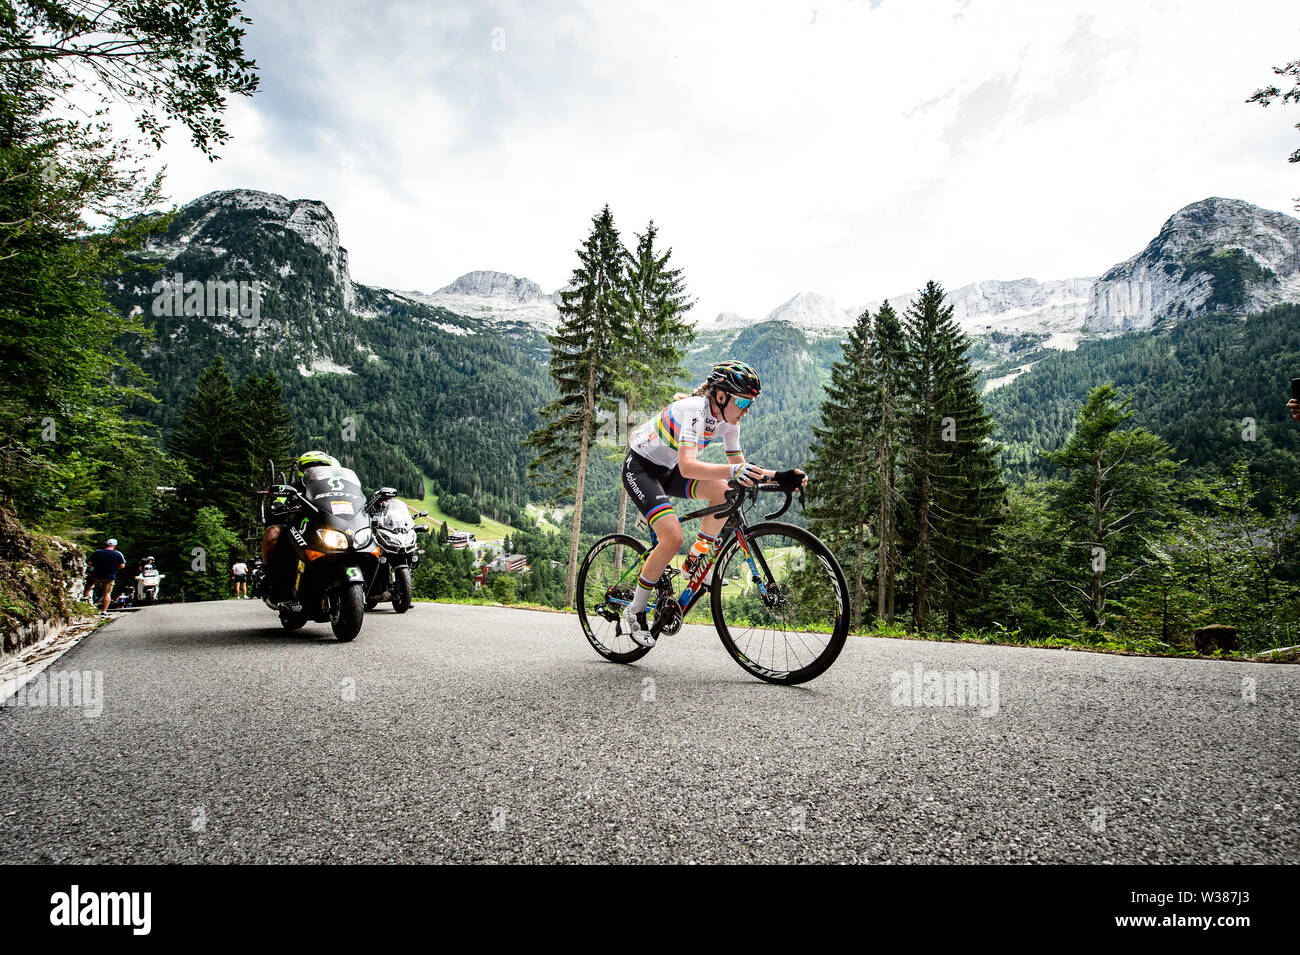 Chiusaforte, Italy. 13th July, 2019.Chiusaforte/Malga Montasio - 13-07-2019, cycling, Stage 9, etappe 9 Gemona - Chiusaforte/Malga Montasio, giro rosa, Anna van der Breggen wins stage 9 of Giro Rosa Credit: Pro Shots/Alamy Live News - Stock Image